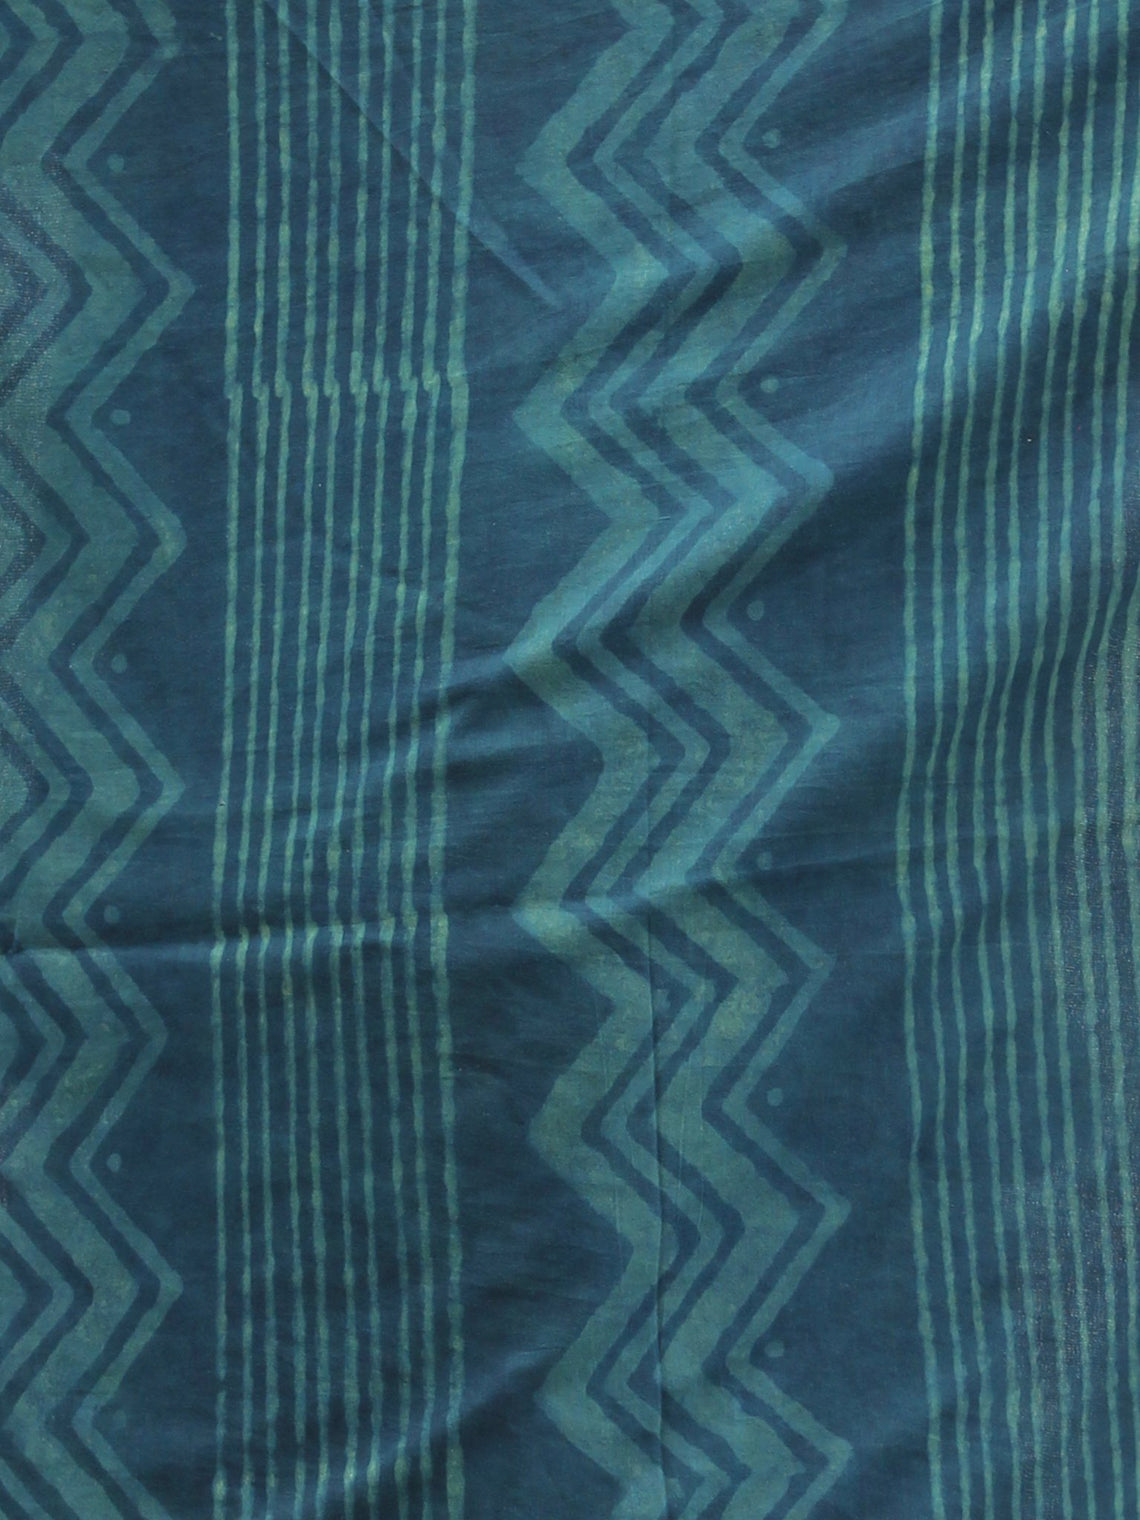 Deep Indigo Green Cotton Hand Block Printed Dupatta With Hand Made Tassels - D04170415